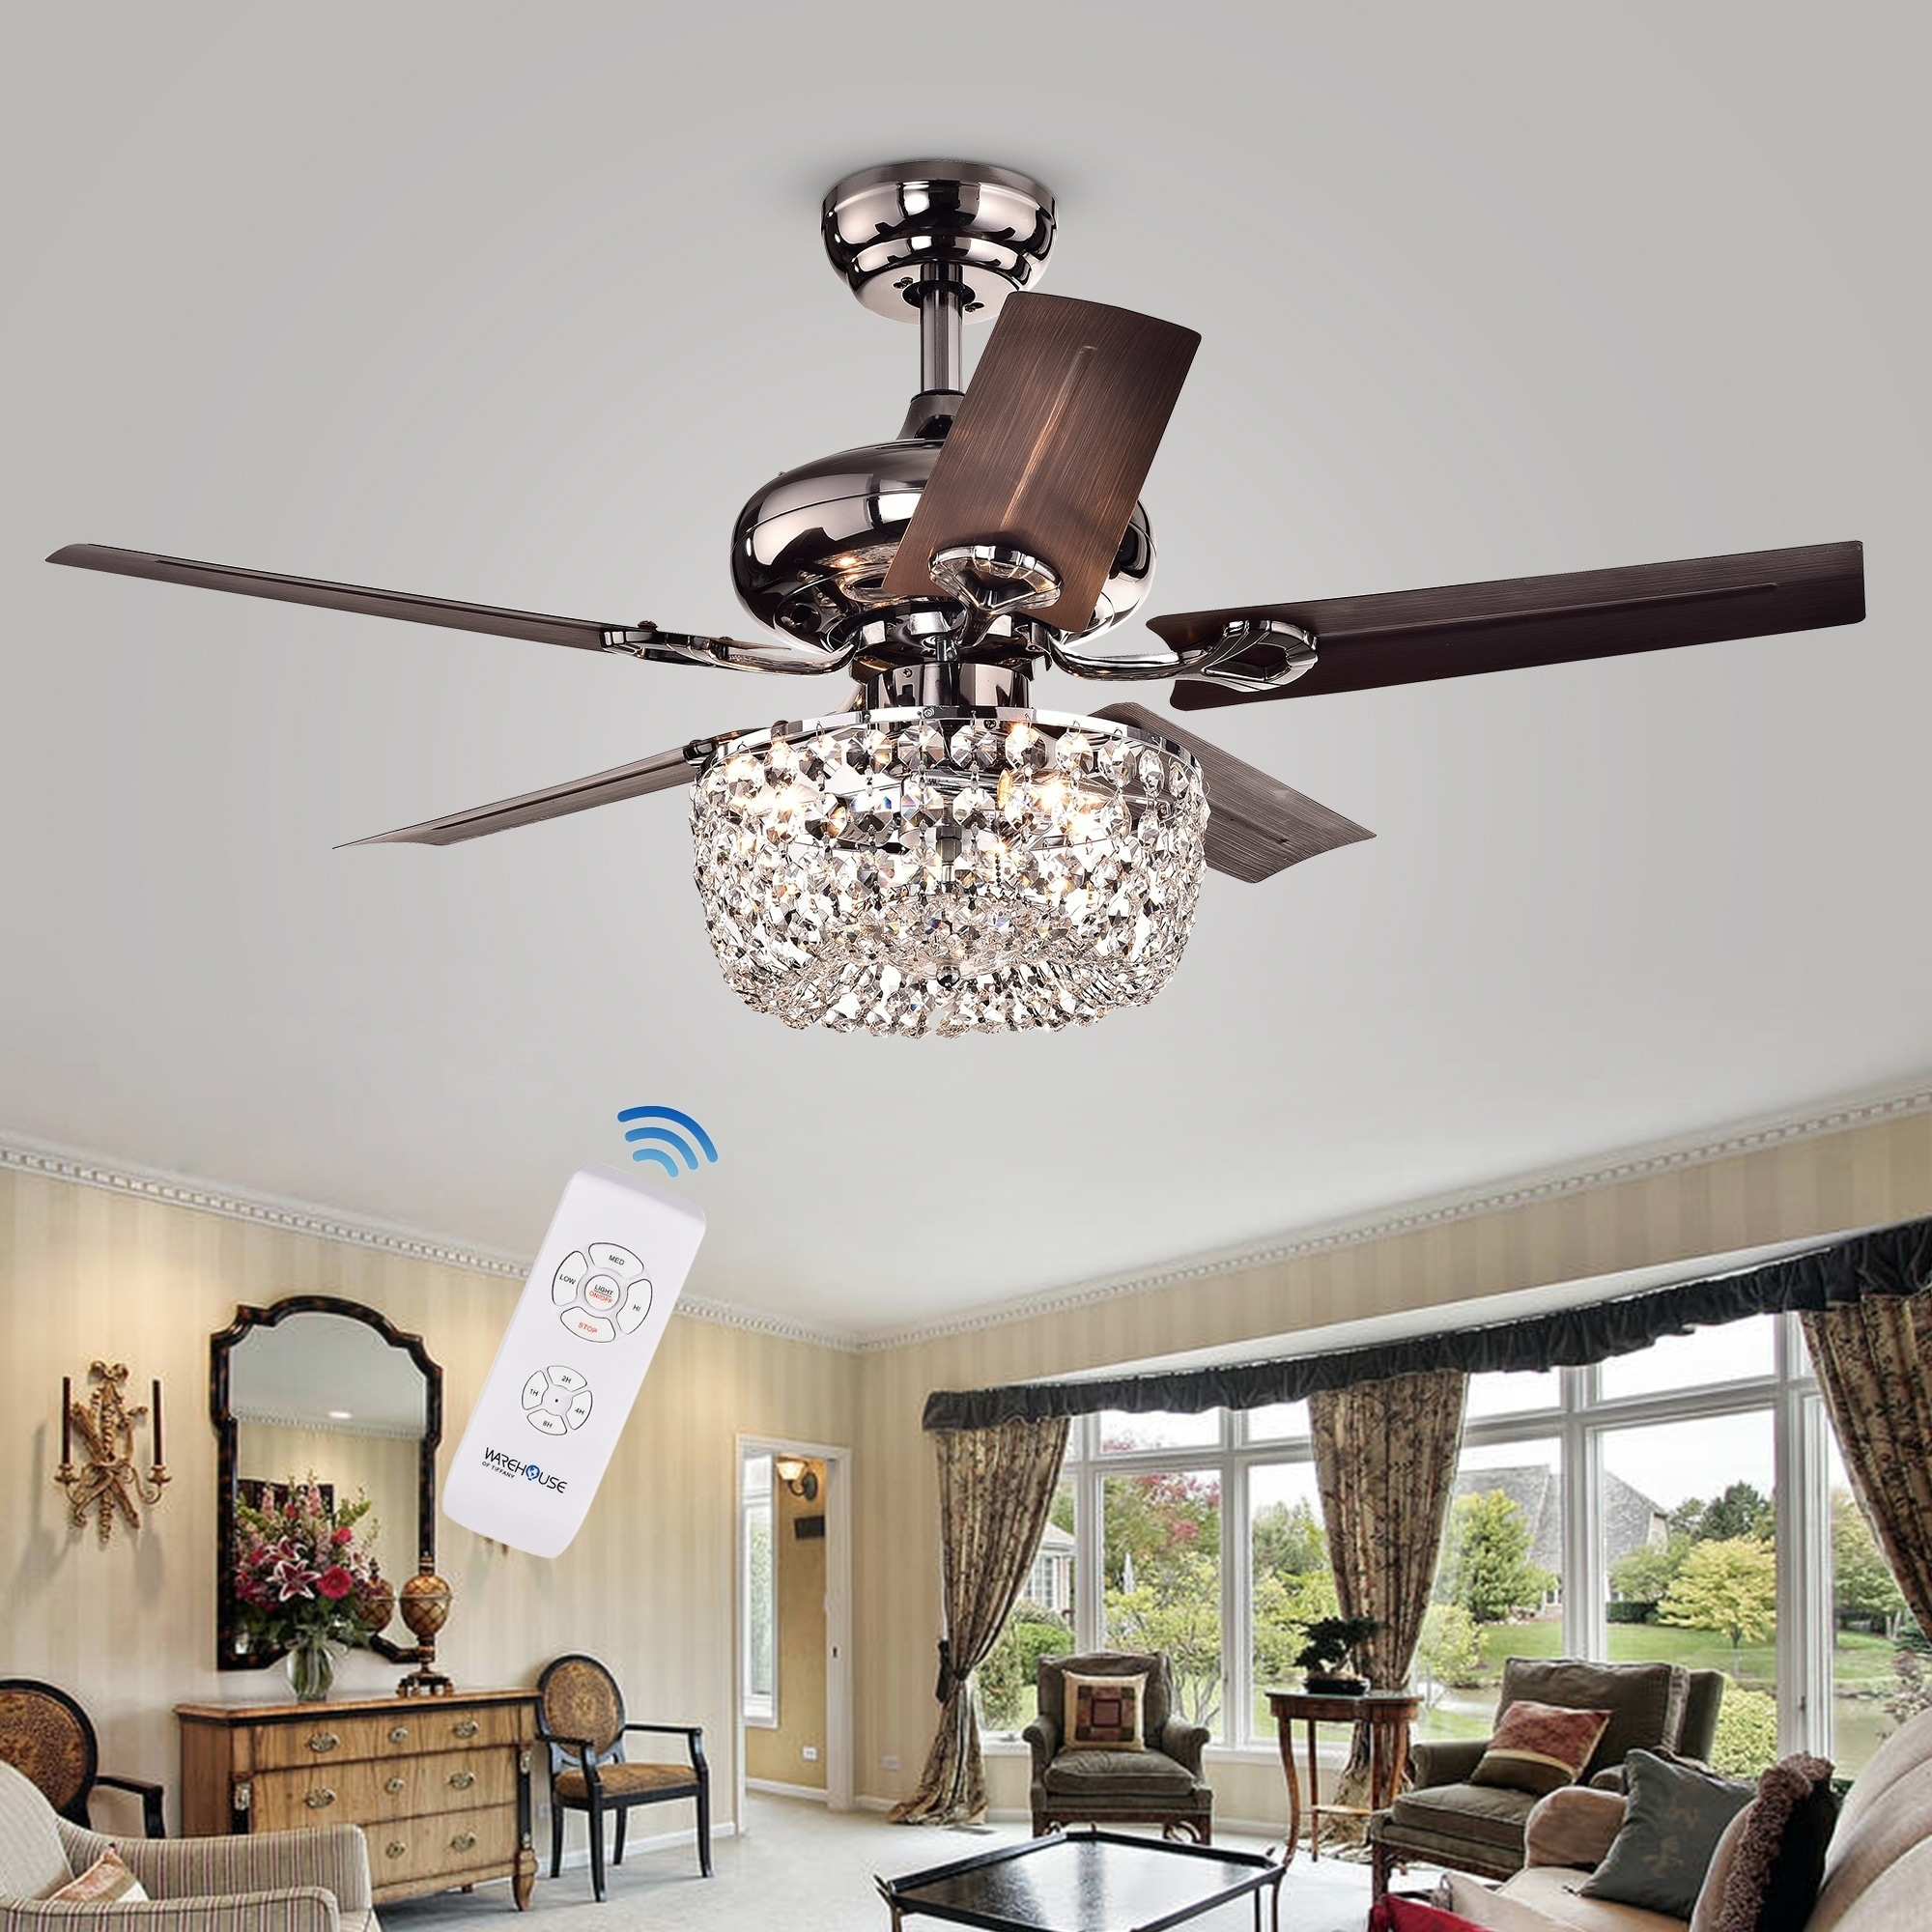 Angel 3 Light Crystal Chandelier 5 Blade 43 Inch Brown Ceiling Fan Optional Remote On Free Shipping Today 11045526